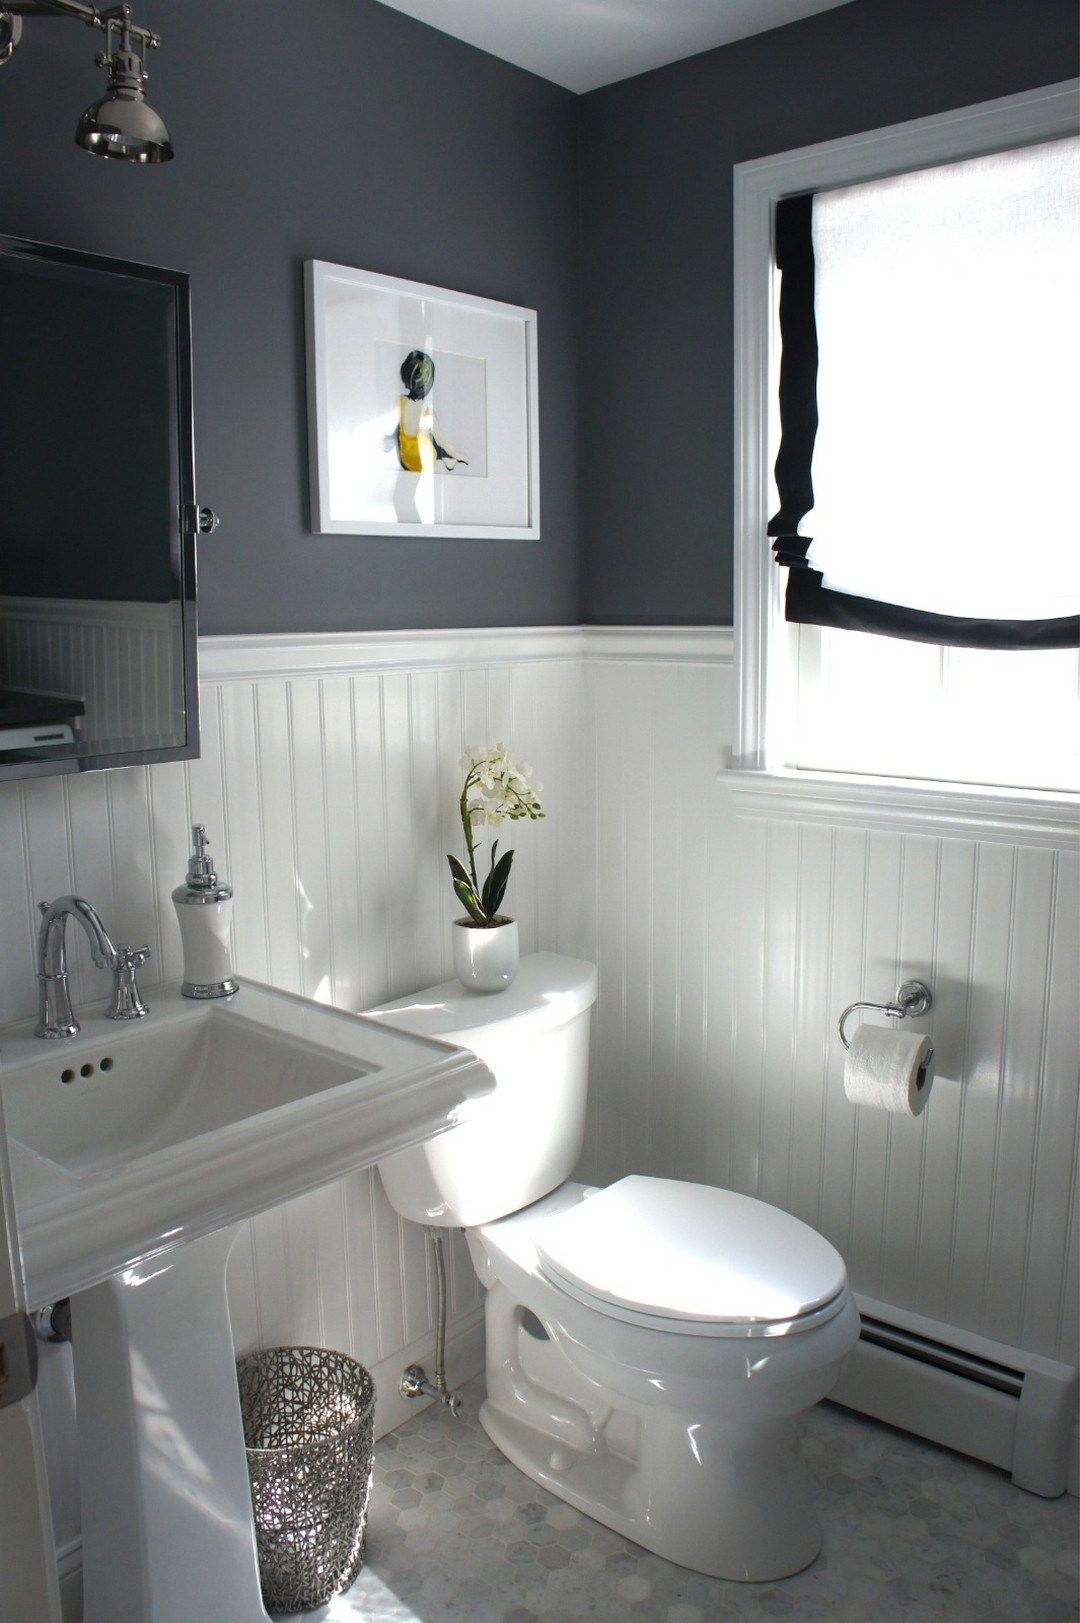 99 small master bathroom makeover ideas on a budget 48 for New small bathroom ideas